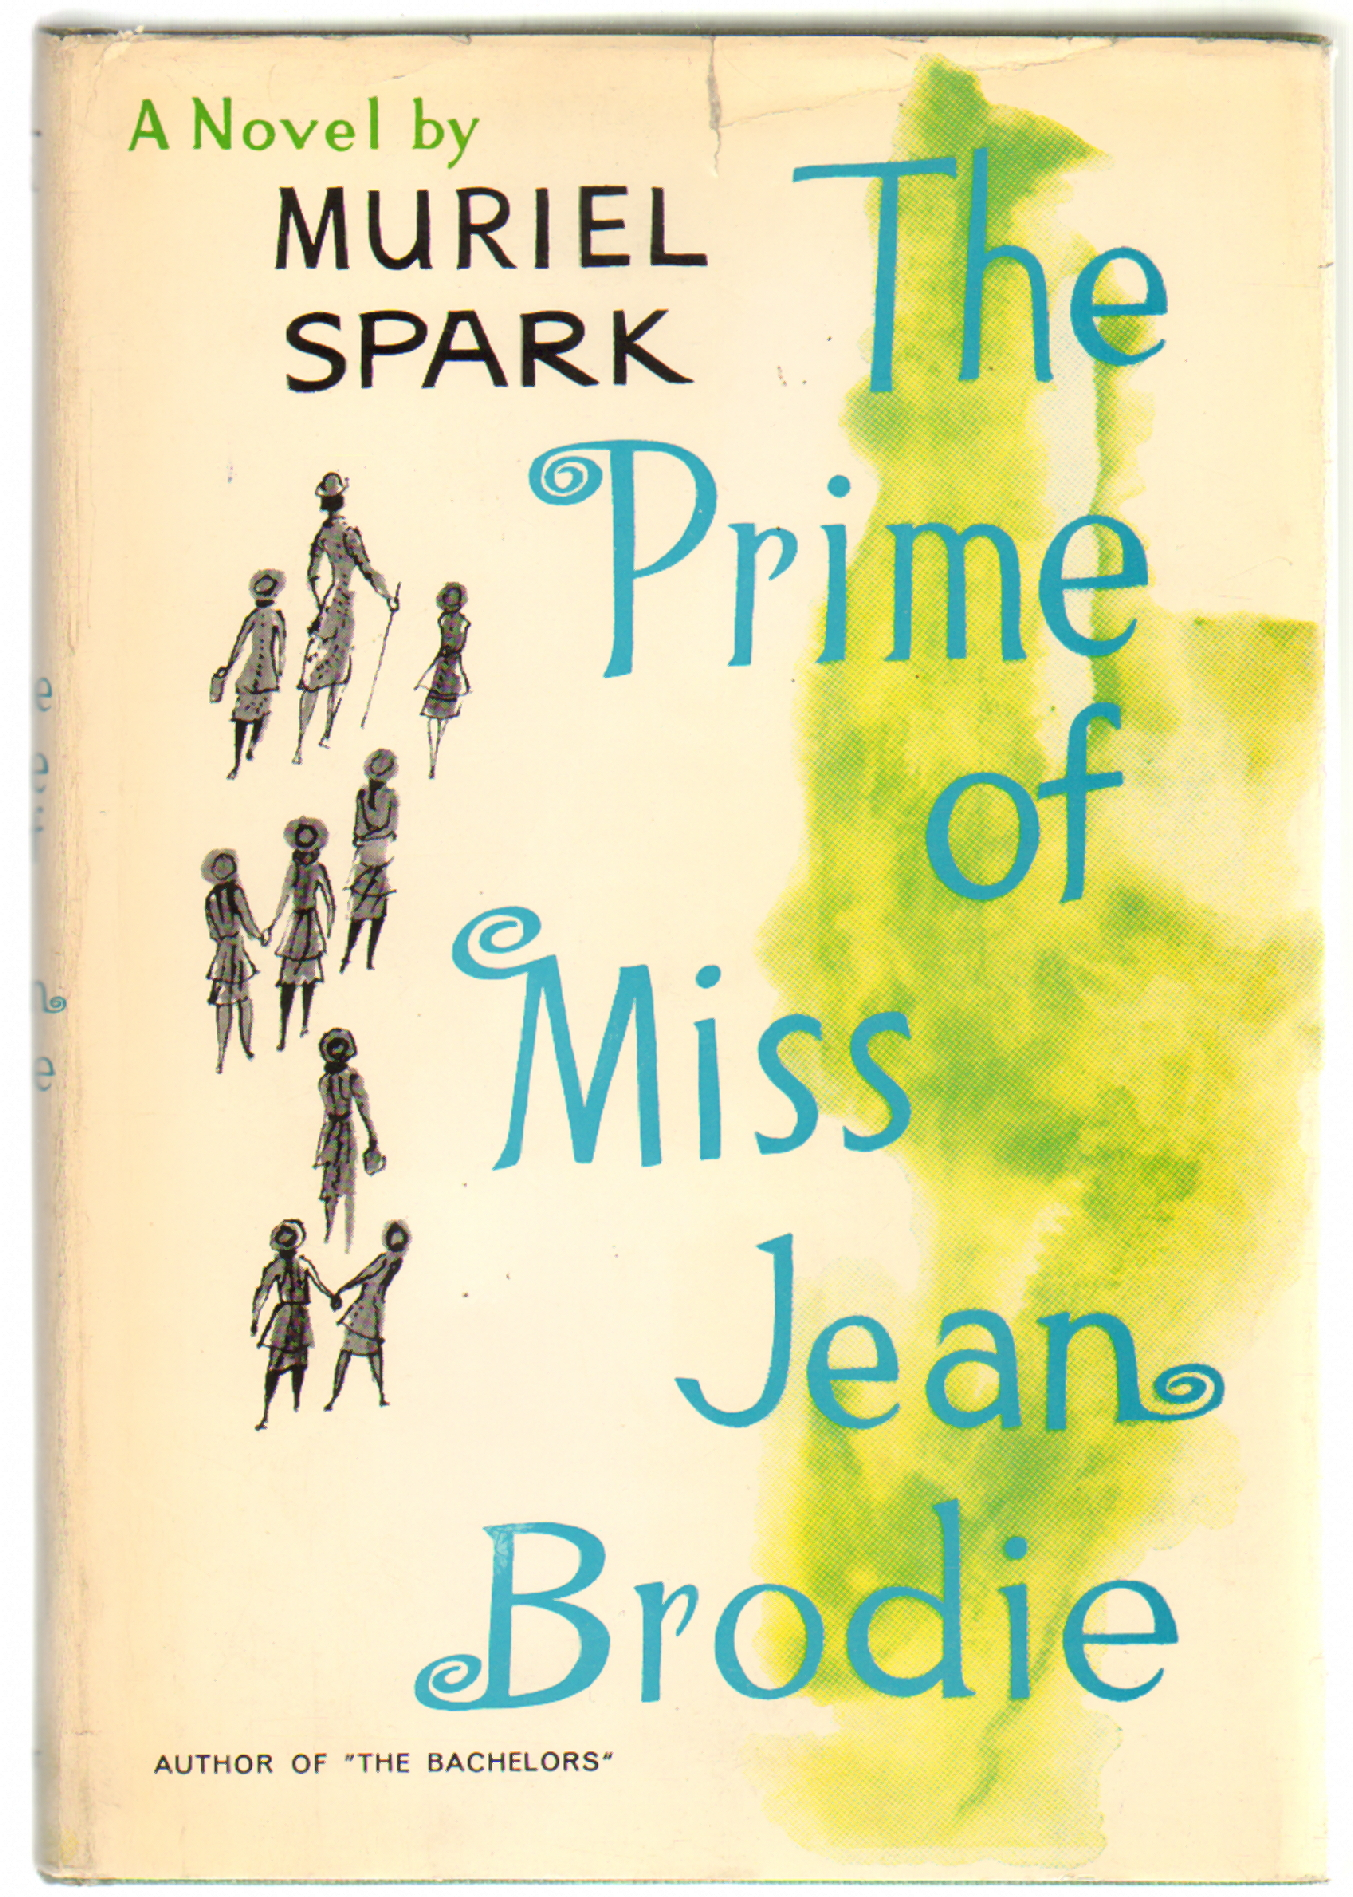 the prime of miss jean brodie character analysis